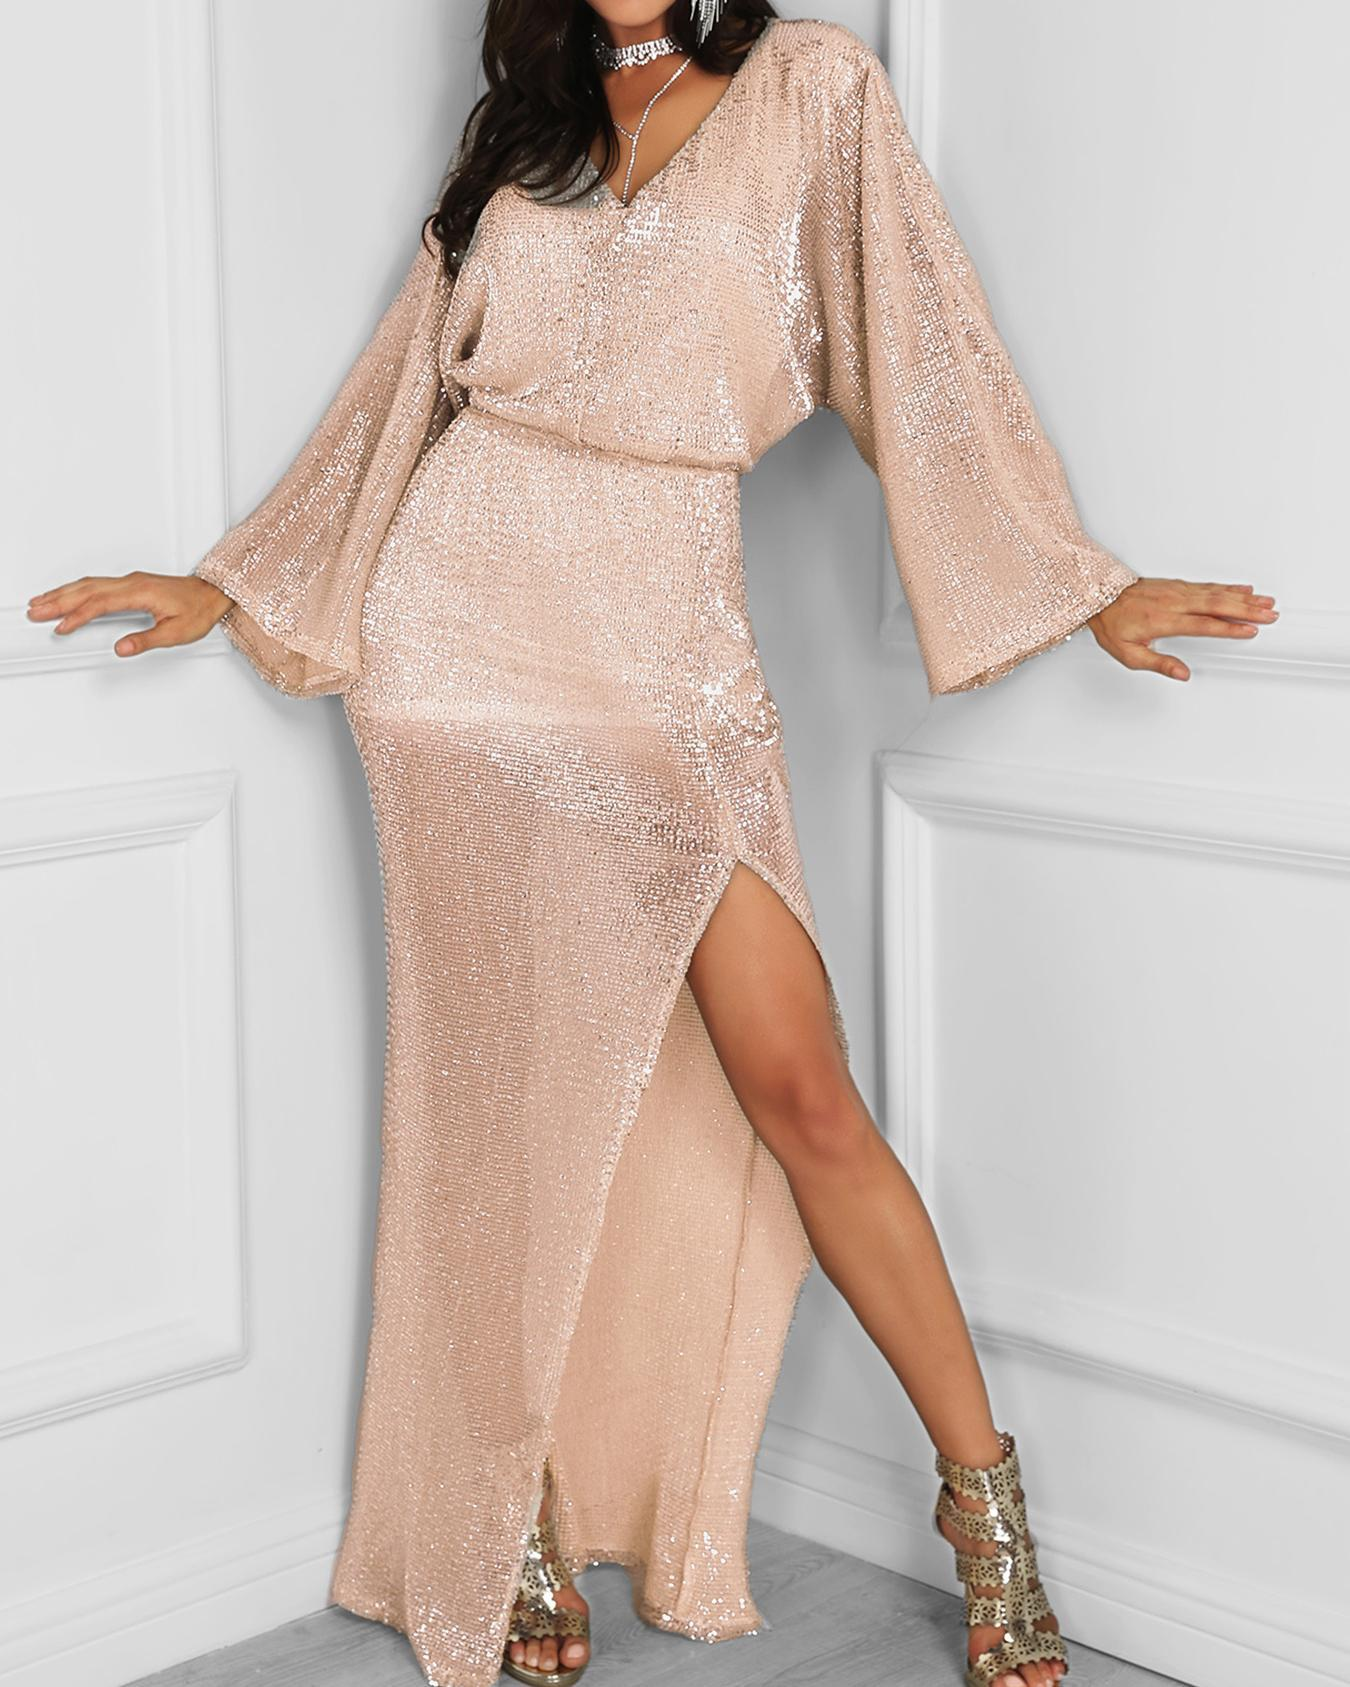 Bat-Wing Sleeve Thigh Slit Sequin Party Dress